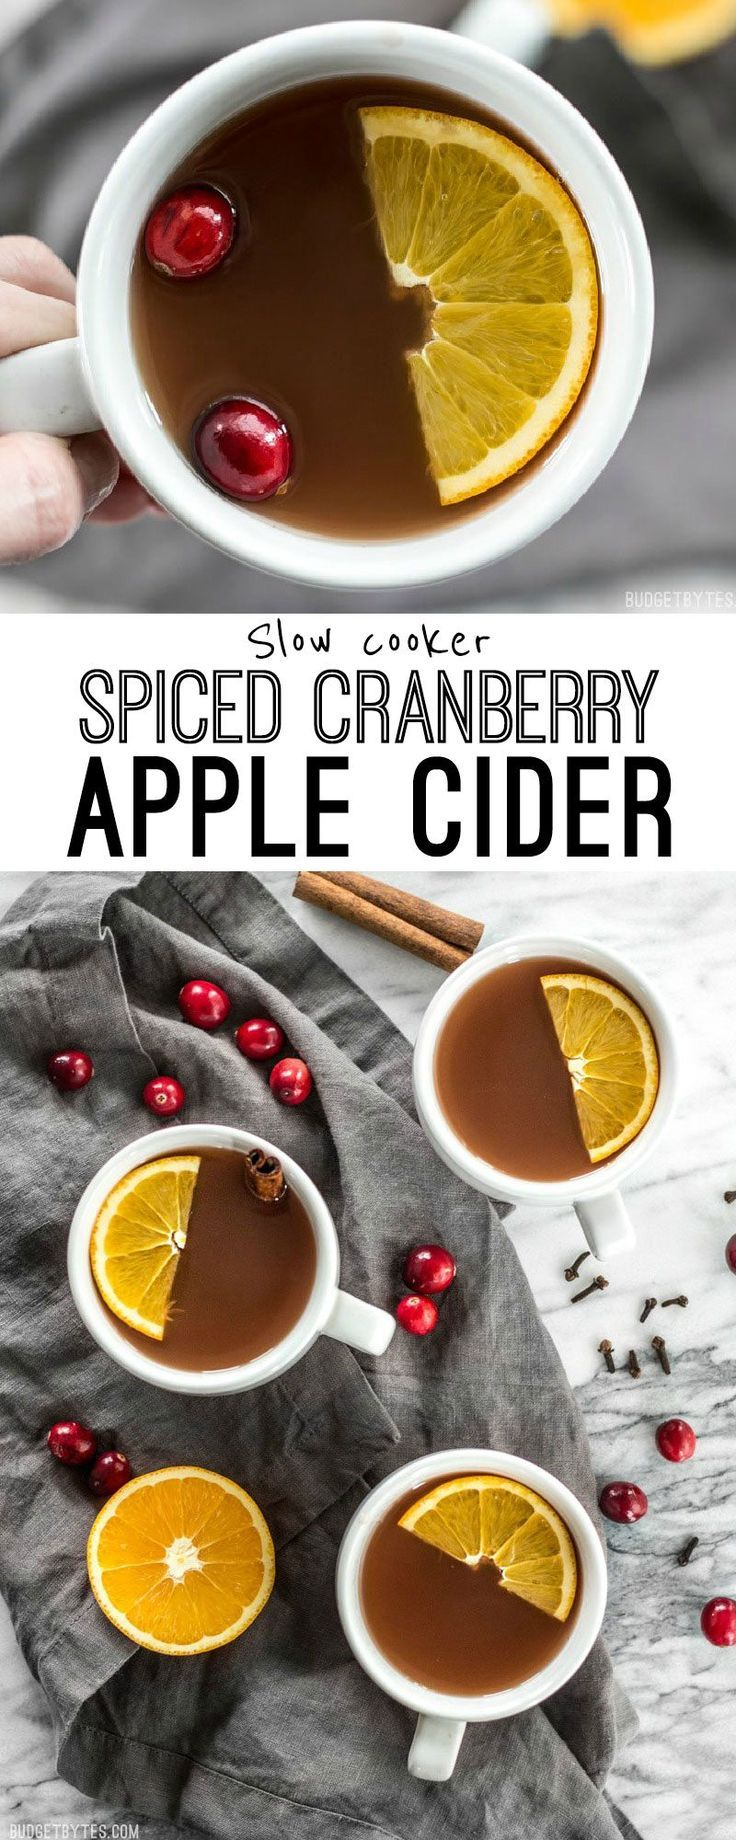 Slow Cooker Spiced Cranberry Apple Cider is an easy and festive drink for all your holiday party guests. @budgetbytes